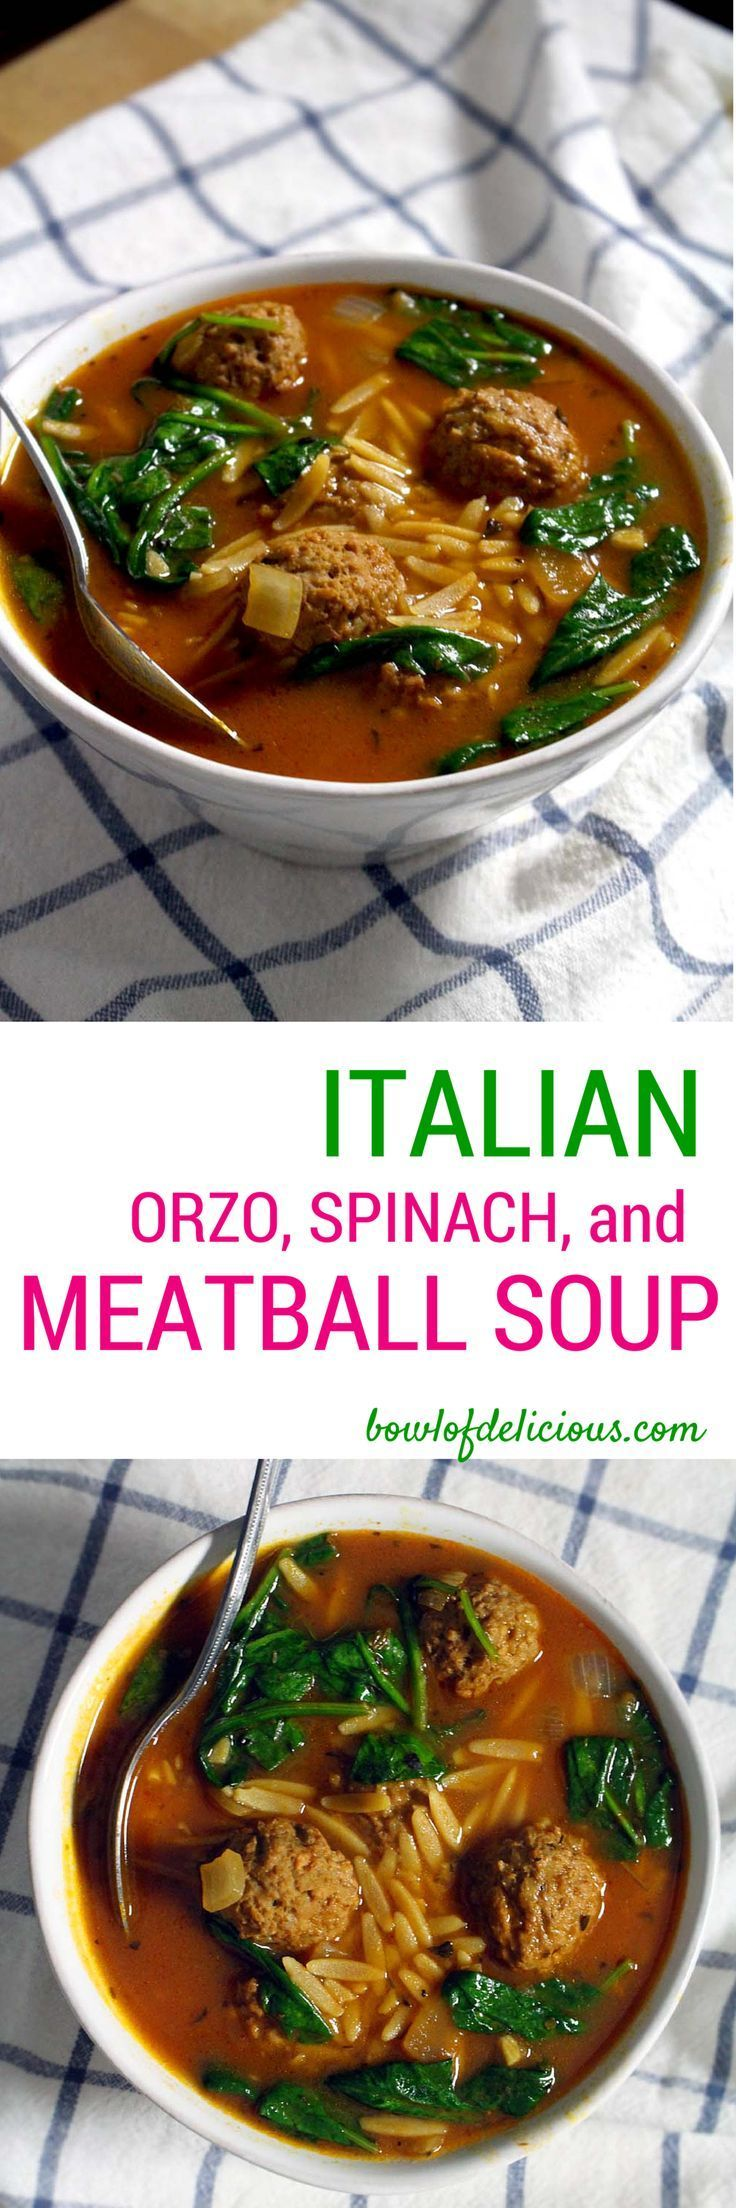 Italian Spinach, Orzo, and Meatball Soup | Recipe | Spinach, Meatball ...